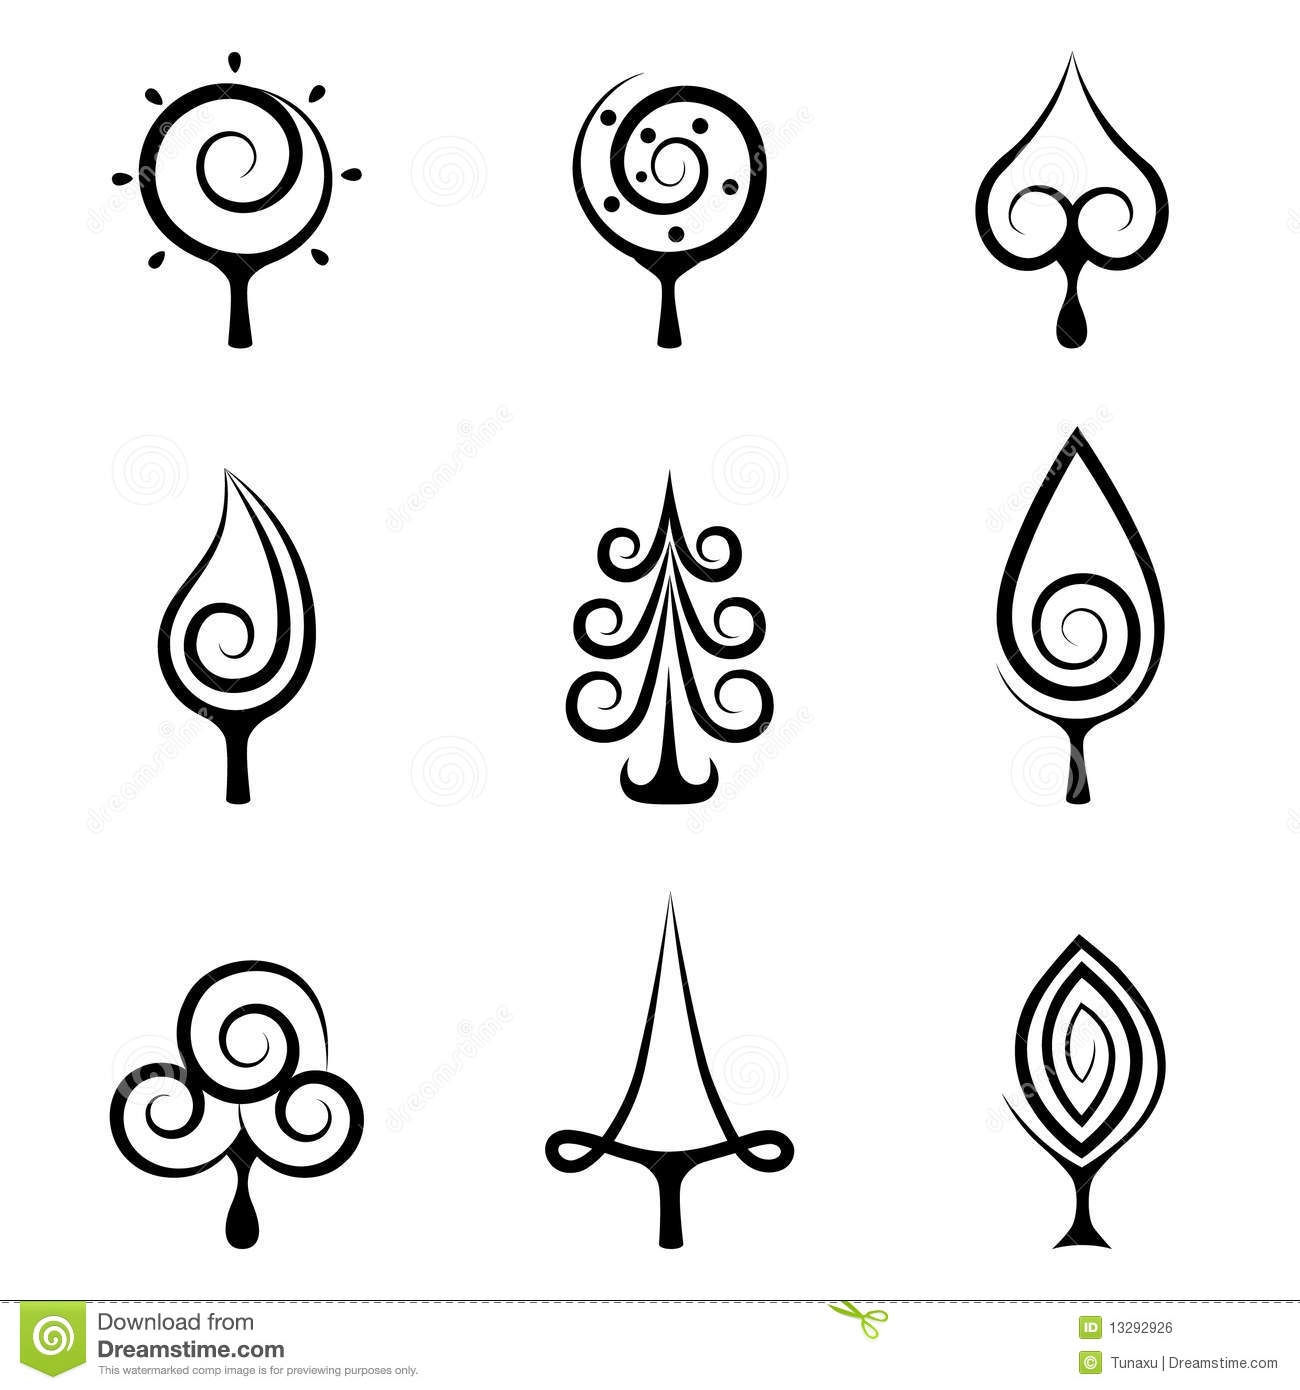 Drawn 20angel 20outline 20drawing also Meditation Cushion together with Royalty Free Stock Image Abstract Tree Symbols Image13292926 additionally File pyrazine structure besides File Metodo per rendere la Geometria indipendente dal principio della sovrapposizioneFig4 pg138. on simple time drawing